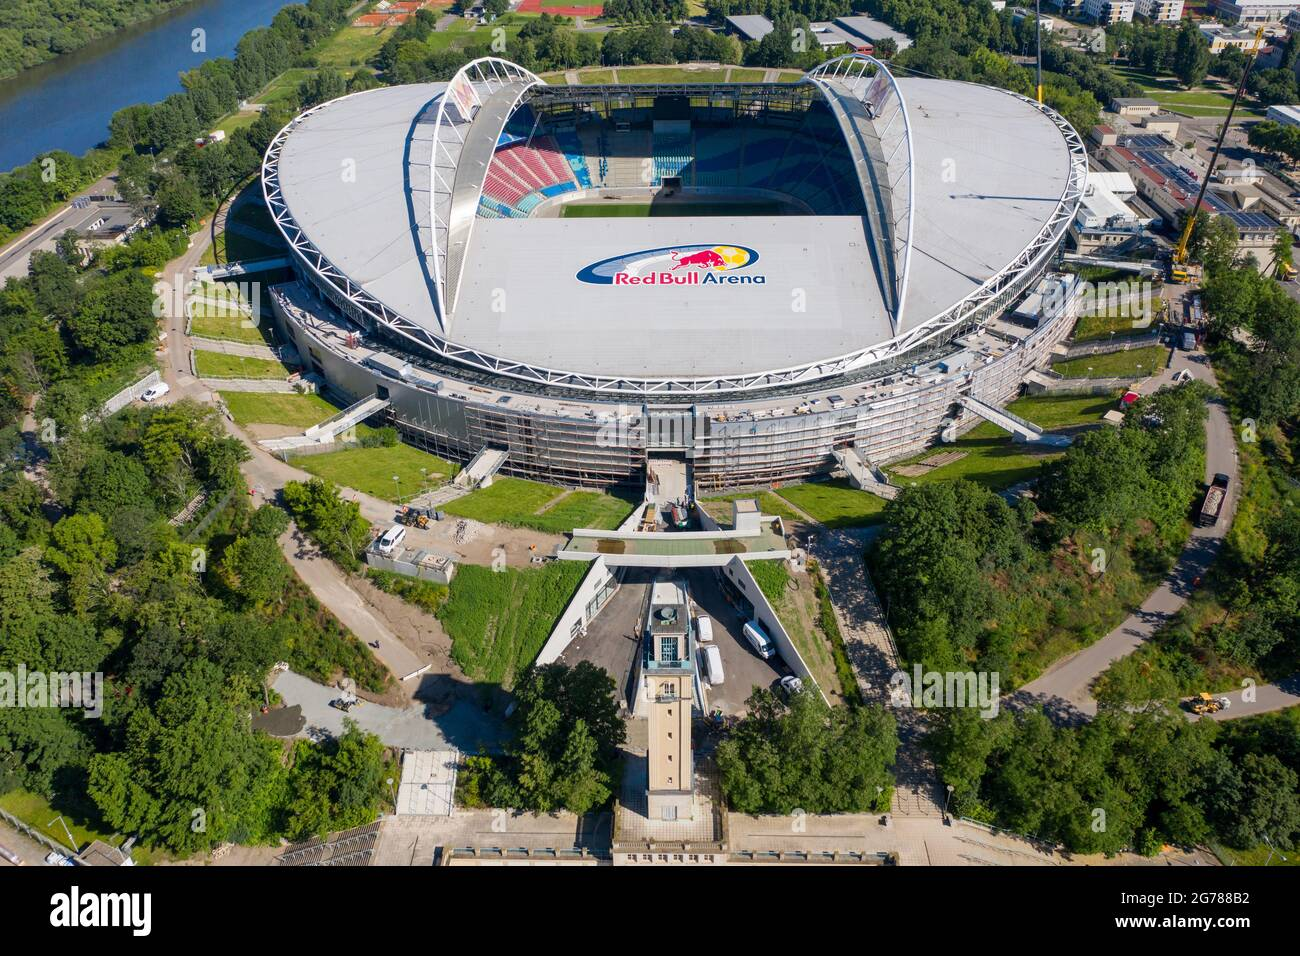 No new stadium then, just an expansion of what's already available at the stadium. 14 June 2021 Saxony Leipzig Two Cranes Stand At The Red Bull Arena Rb Leipzig S Home Ground Is Being Rebuilt The Spectator Capacity Increases From 42 558 To 47 069 Standing And Seated The